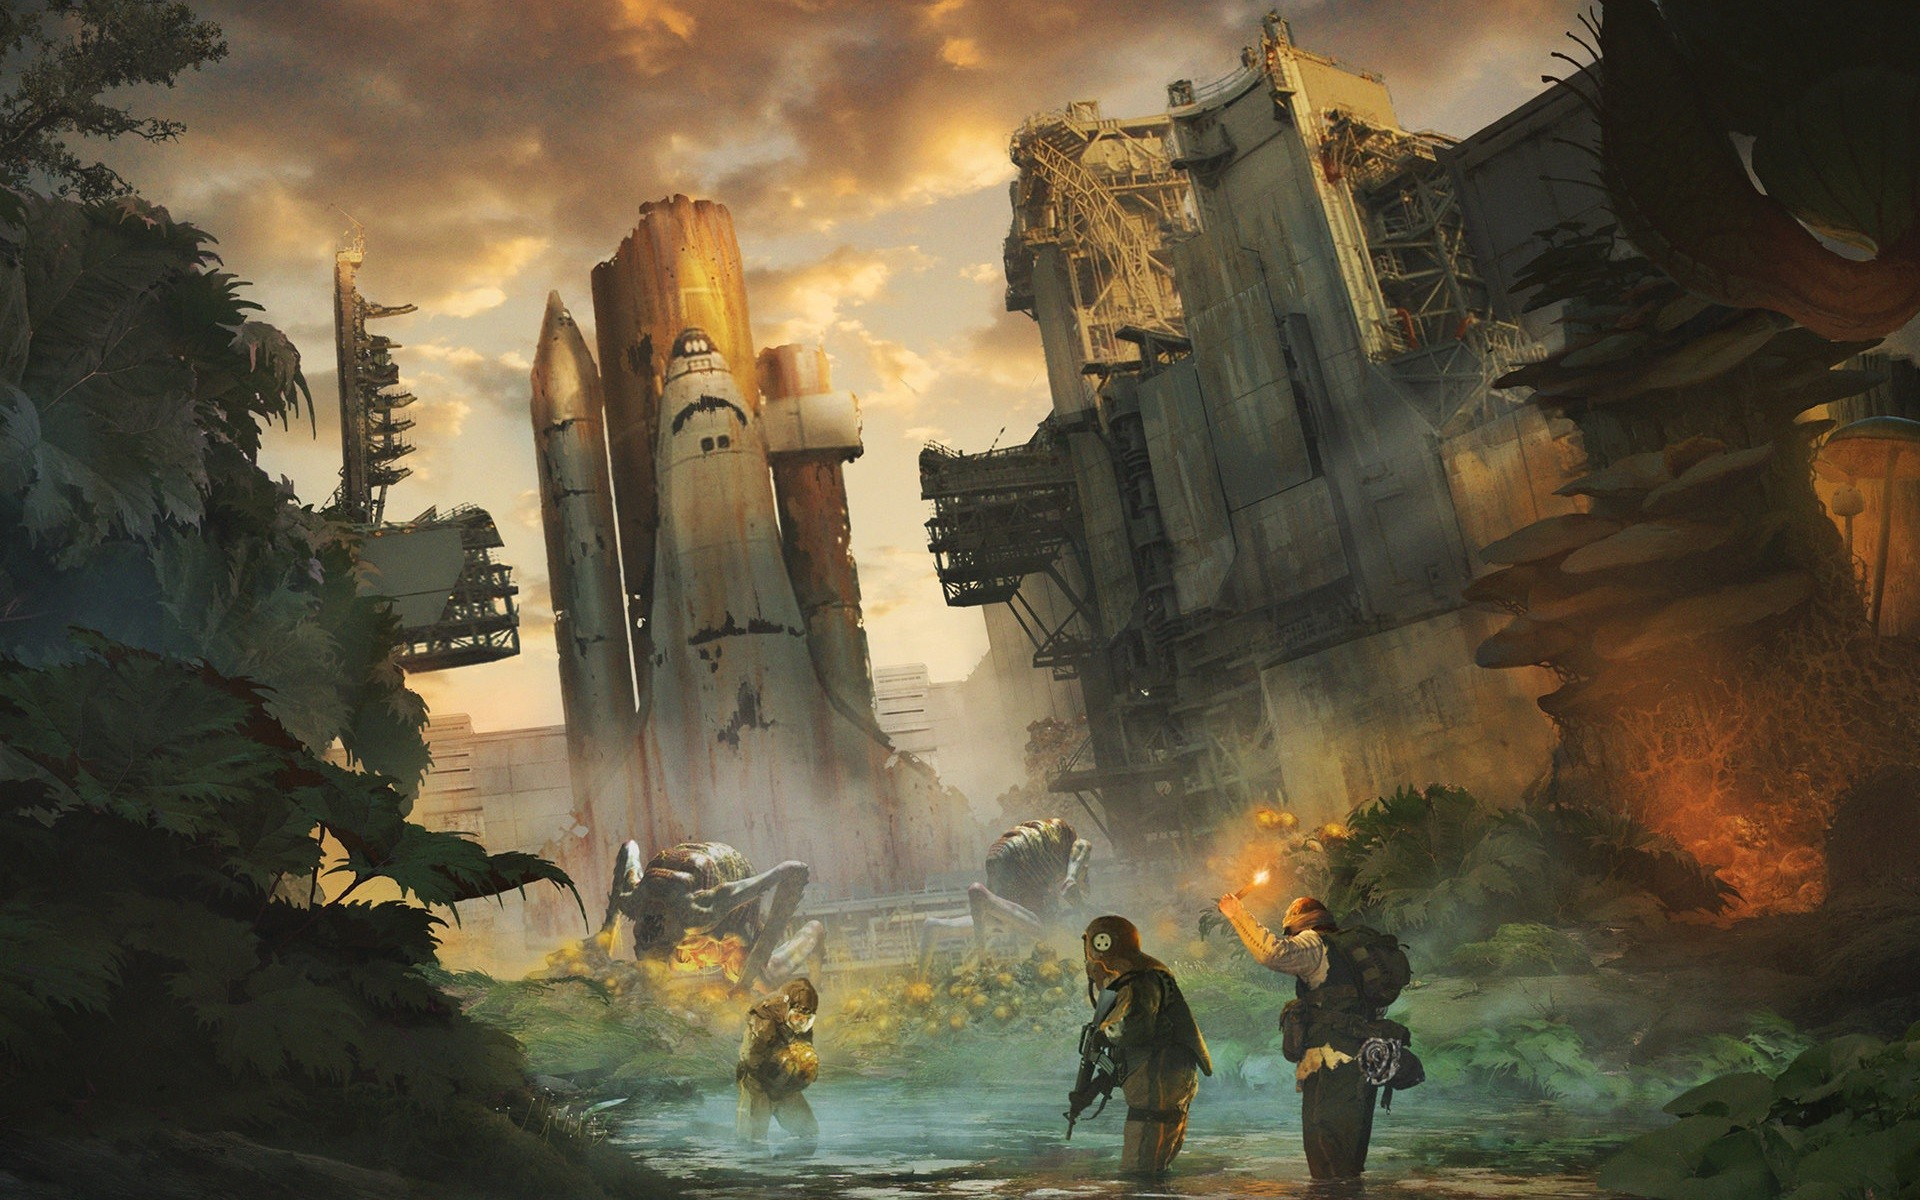 Abandoned Apocalyptic Space Shuttle Concept Art Artwork